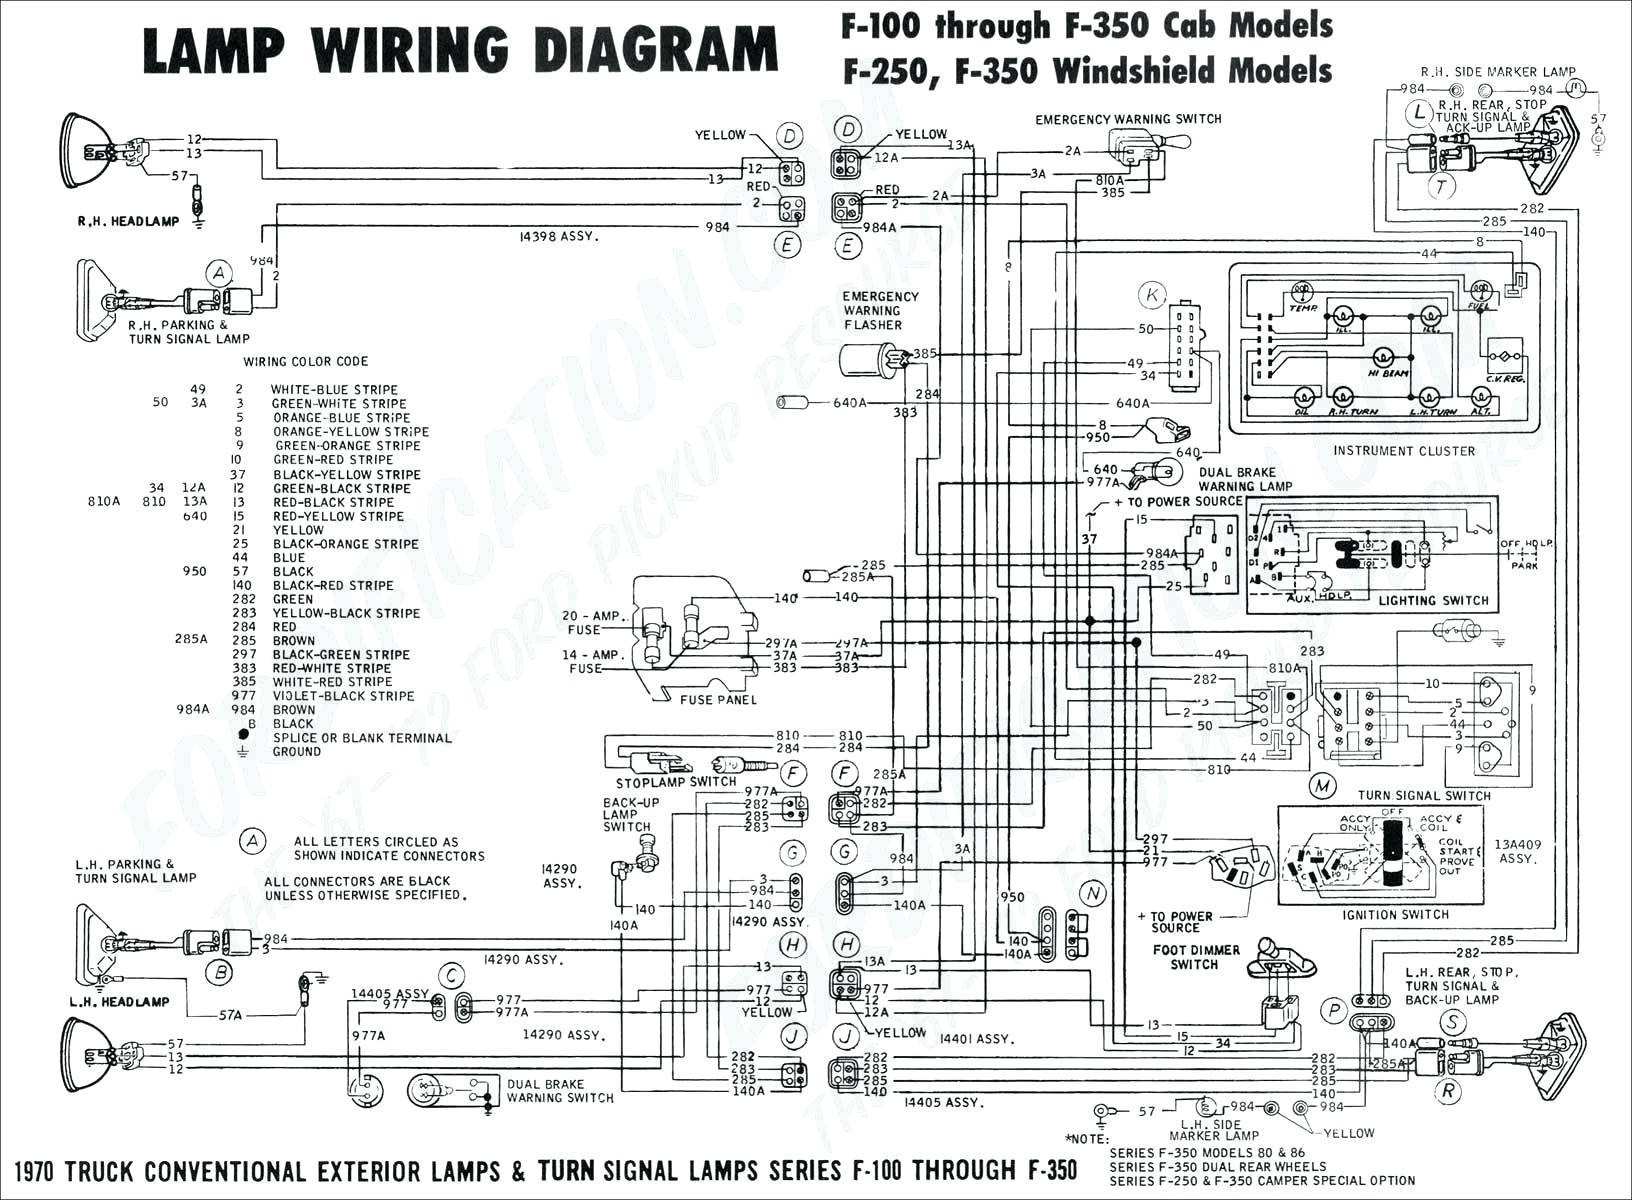 1984 Chevy Pickup Fuse Box Wiring Library 1983 C10 Truck Diagram For Home New 94 Ford F53